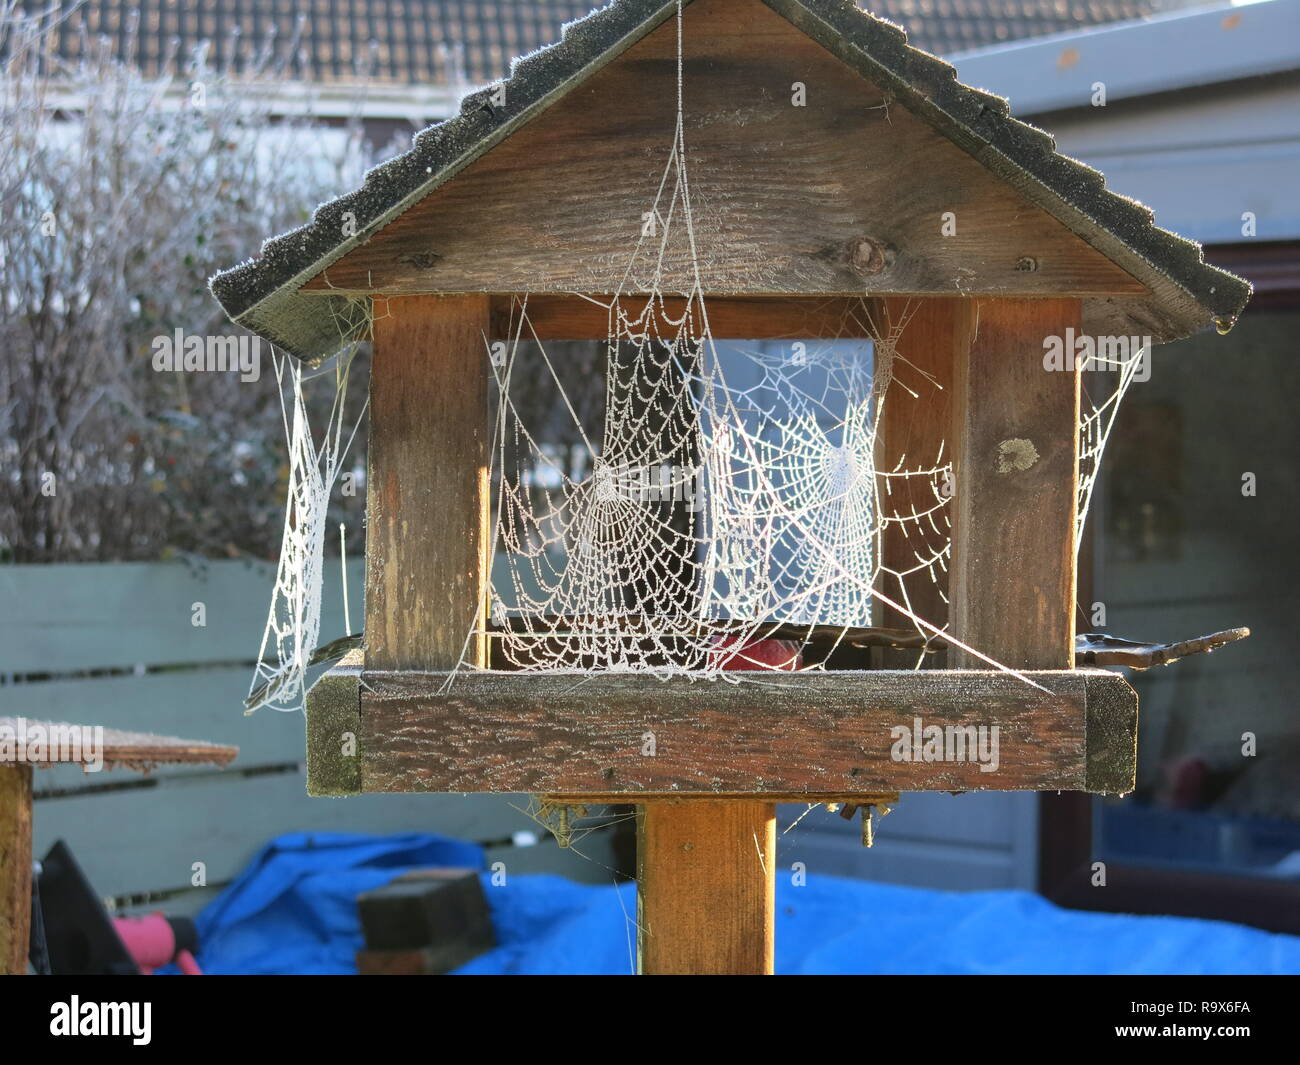 A very hard frost highlights the complex architecture and beauty of spiders' webs on a frosty bird-table in a Scottish garden. - Stock Image